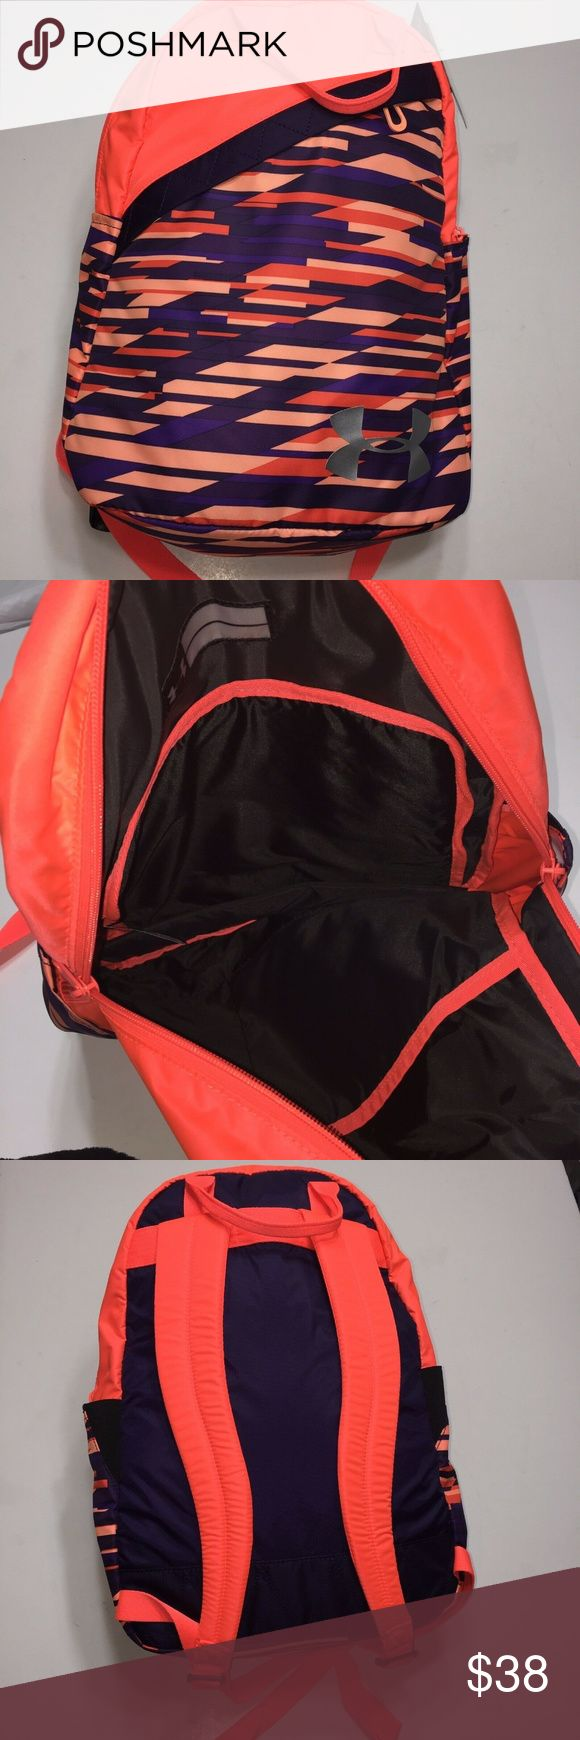 Under Armour Favorite Backpack Orange and Purple Under Armour Girls' / Women…